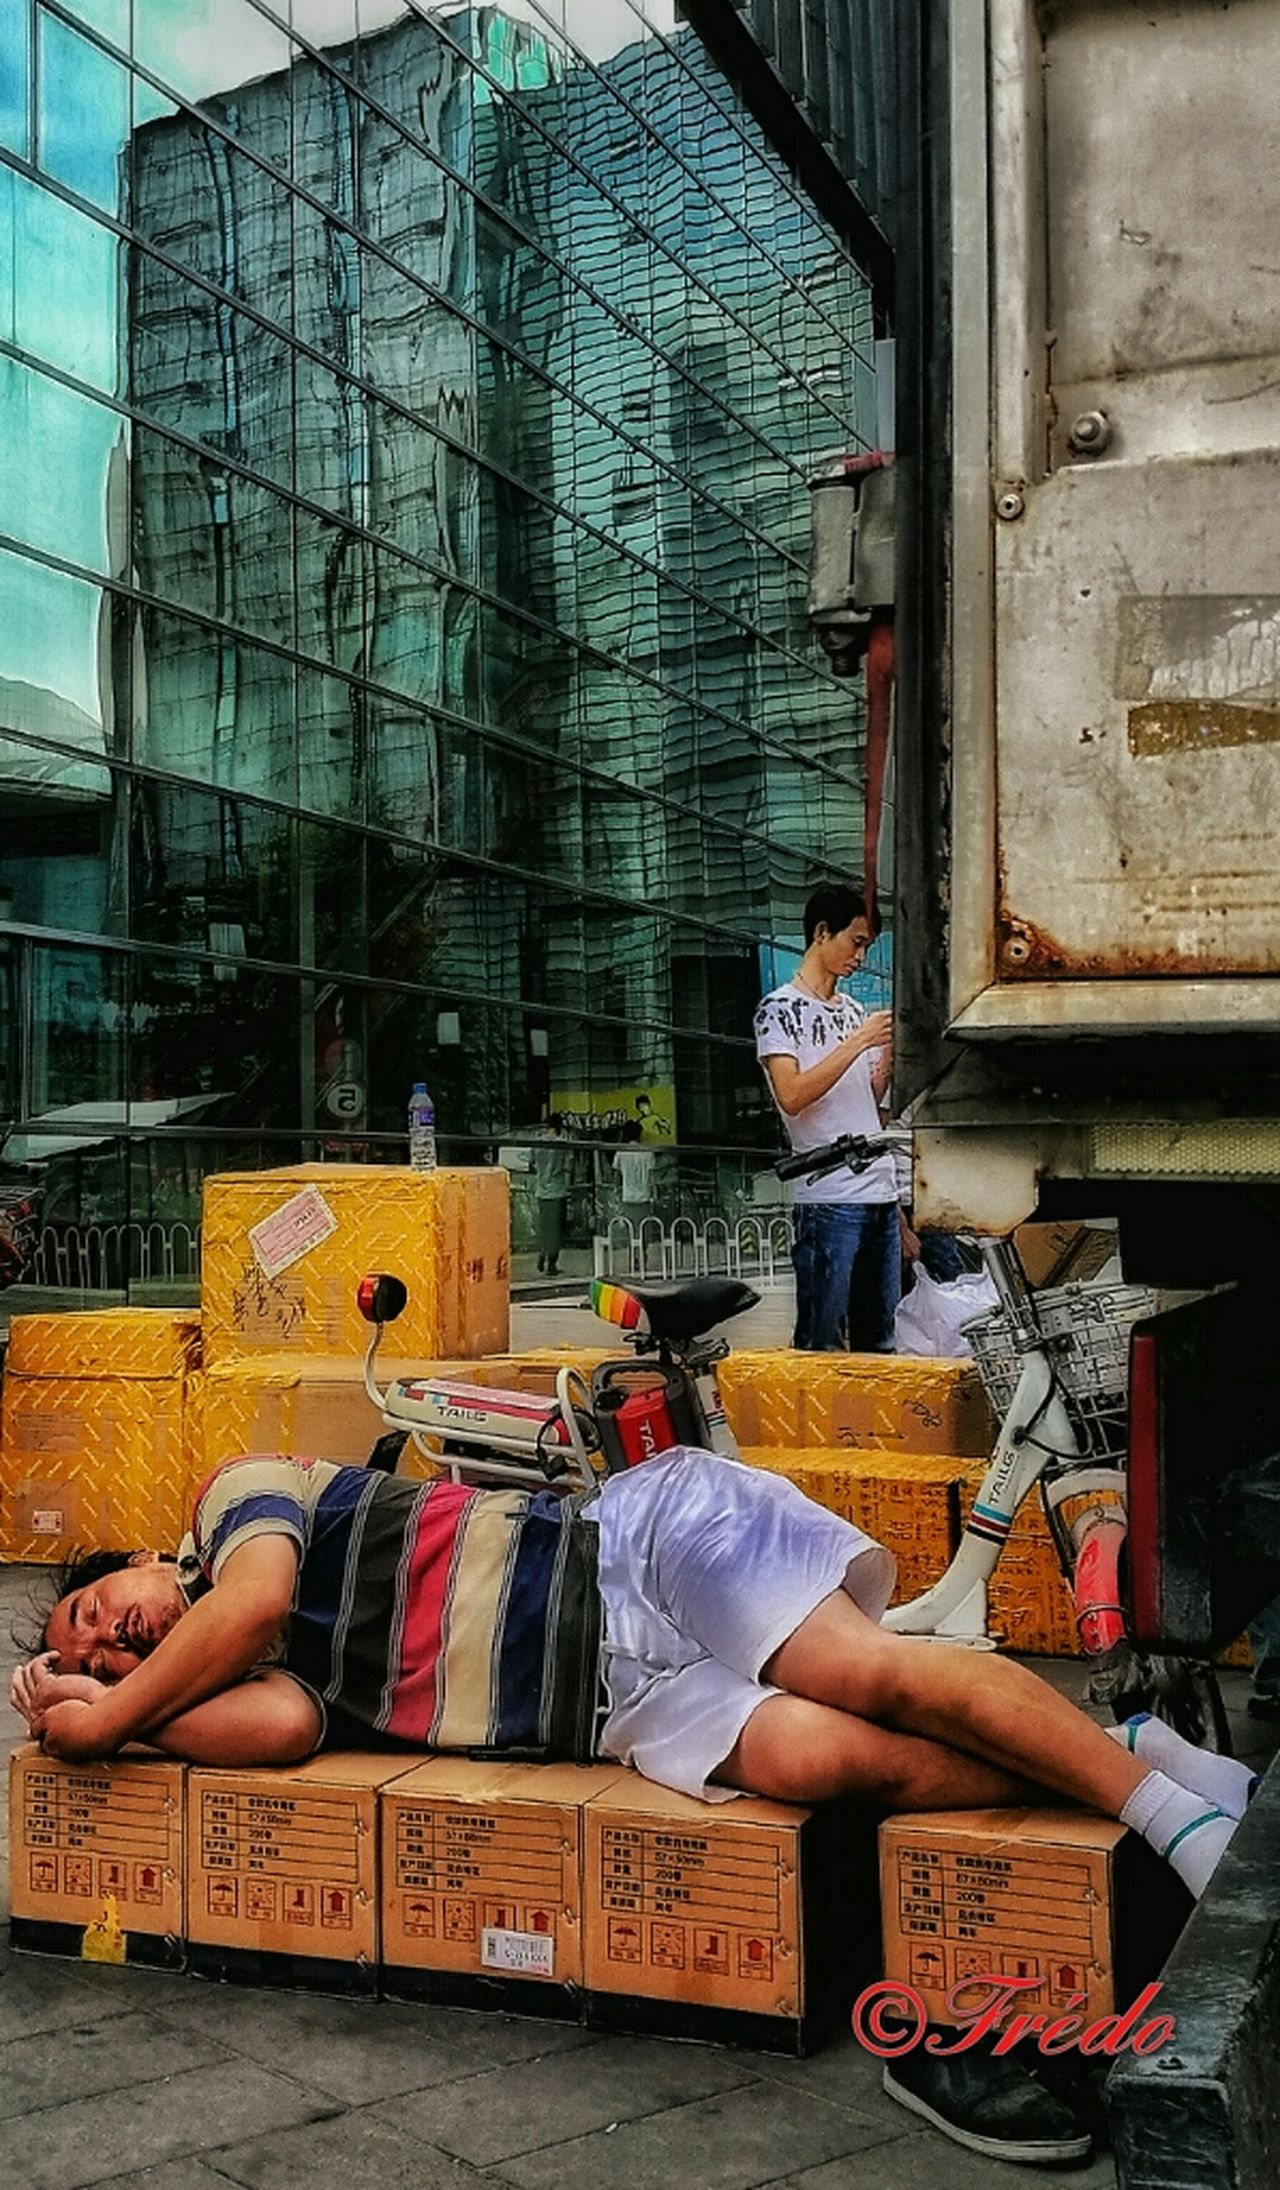 Time To Rest Workers Street Photography Street Photo Trade Beijing, China Beijing Scenes Difficult Life Men China Shotoftheday Architecture